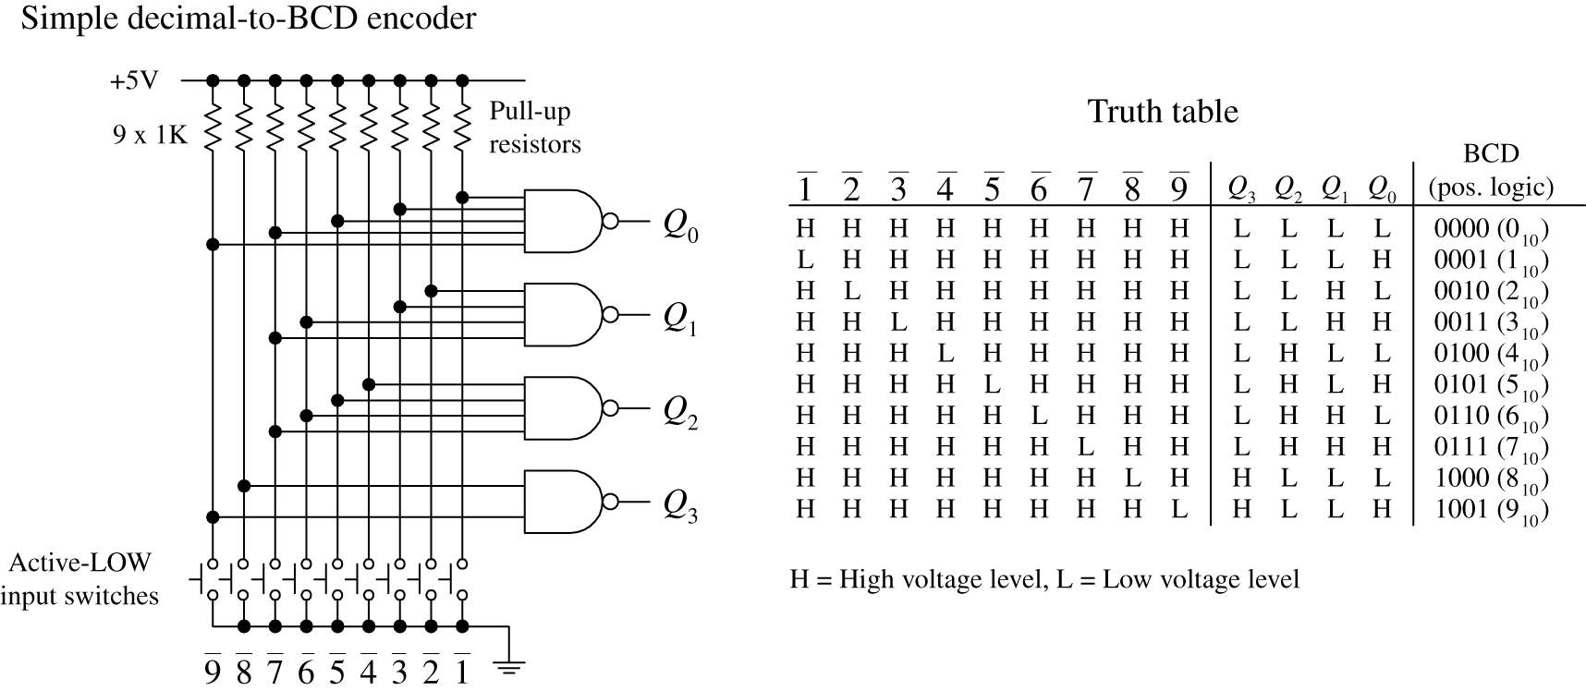 Digital Electronics Practical For Inventors Fourth Encoder Logic Diagram And Truth Table Figure 1239 In This Circuit